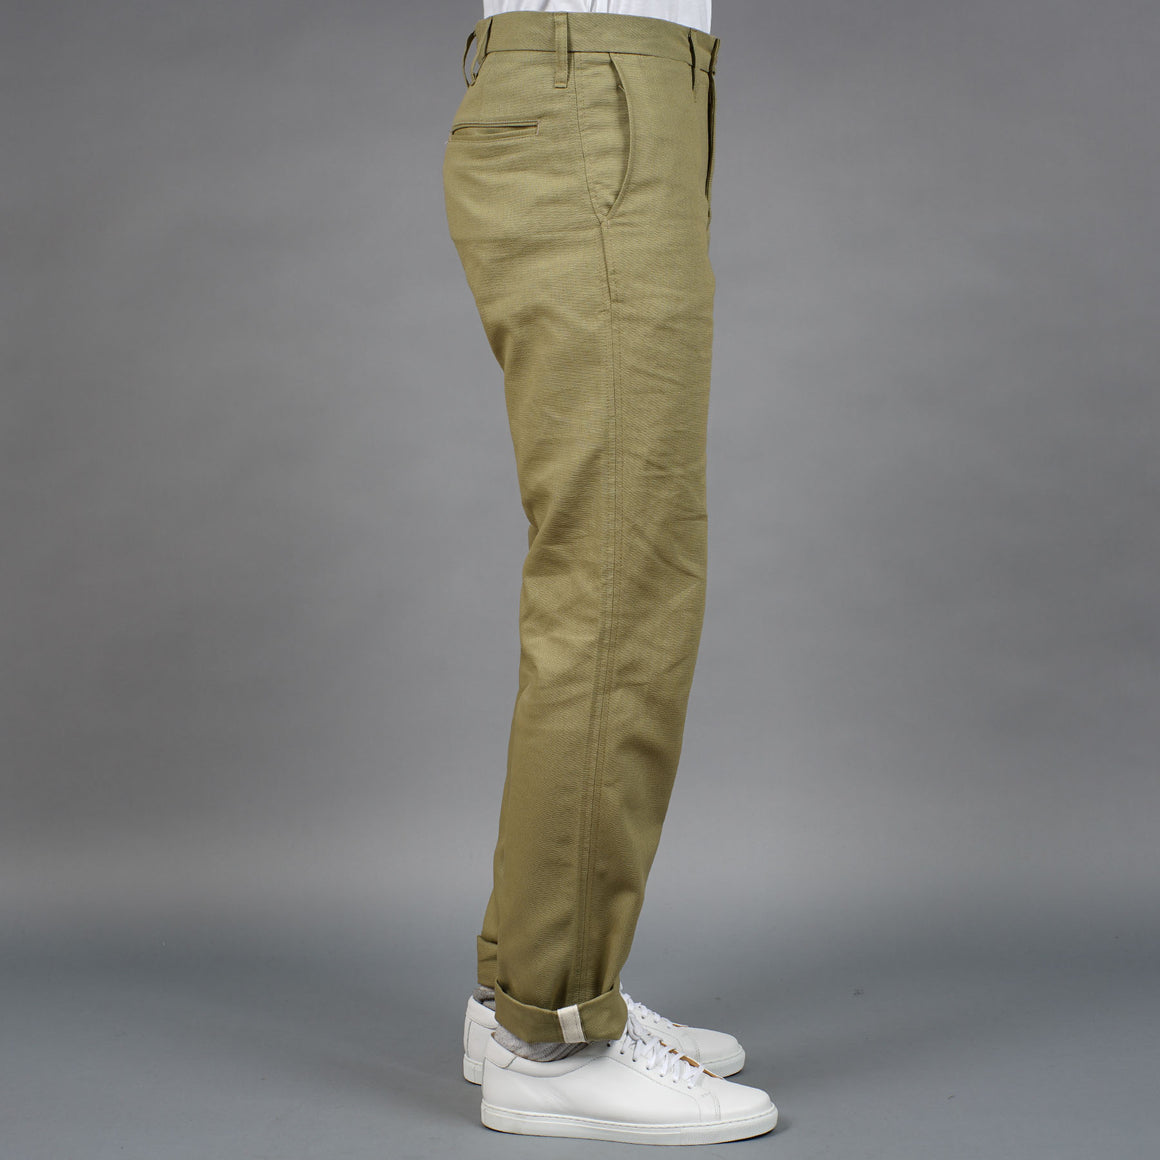 Sandow Athletic Chino 8oz canvas Khaki